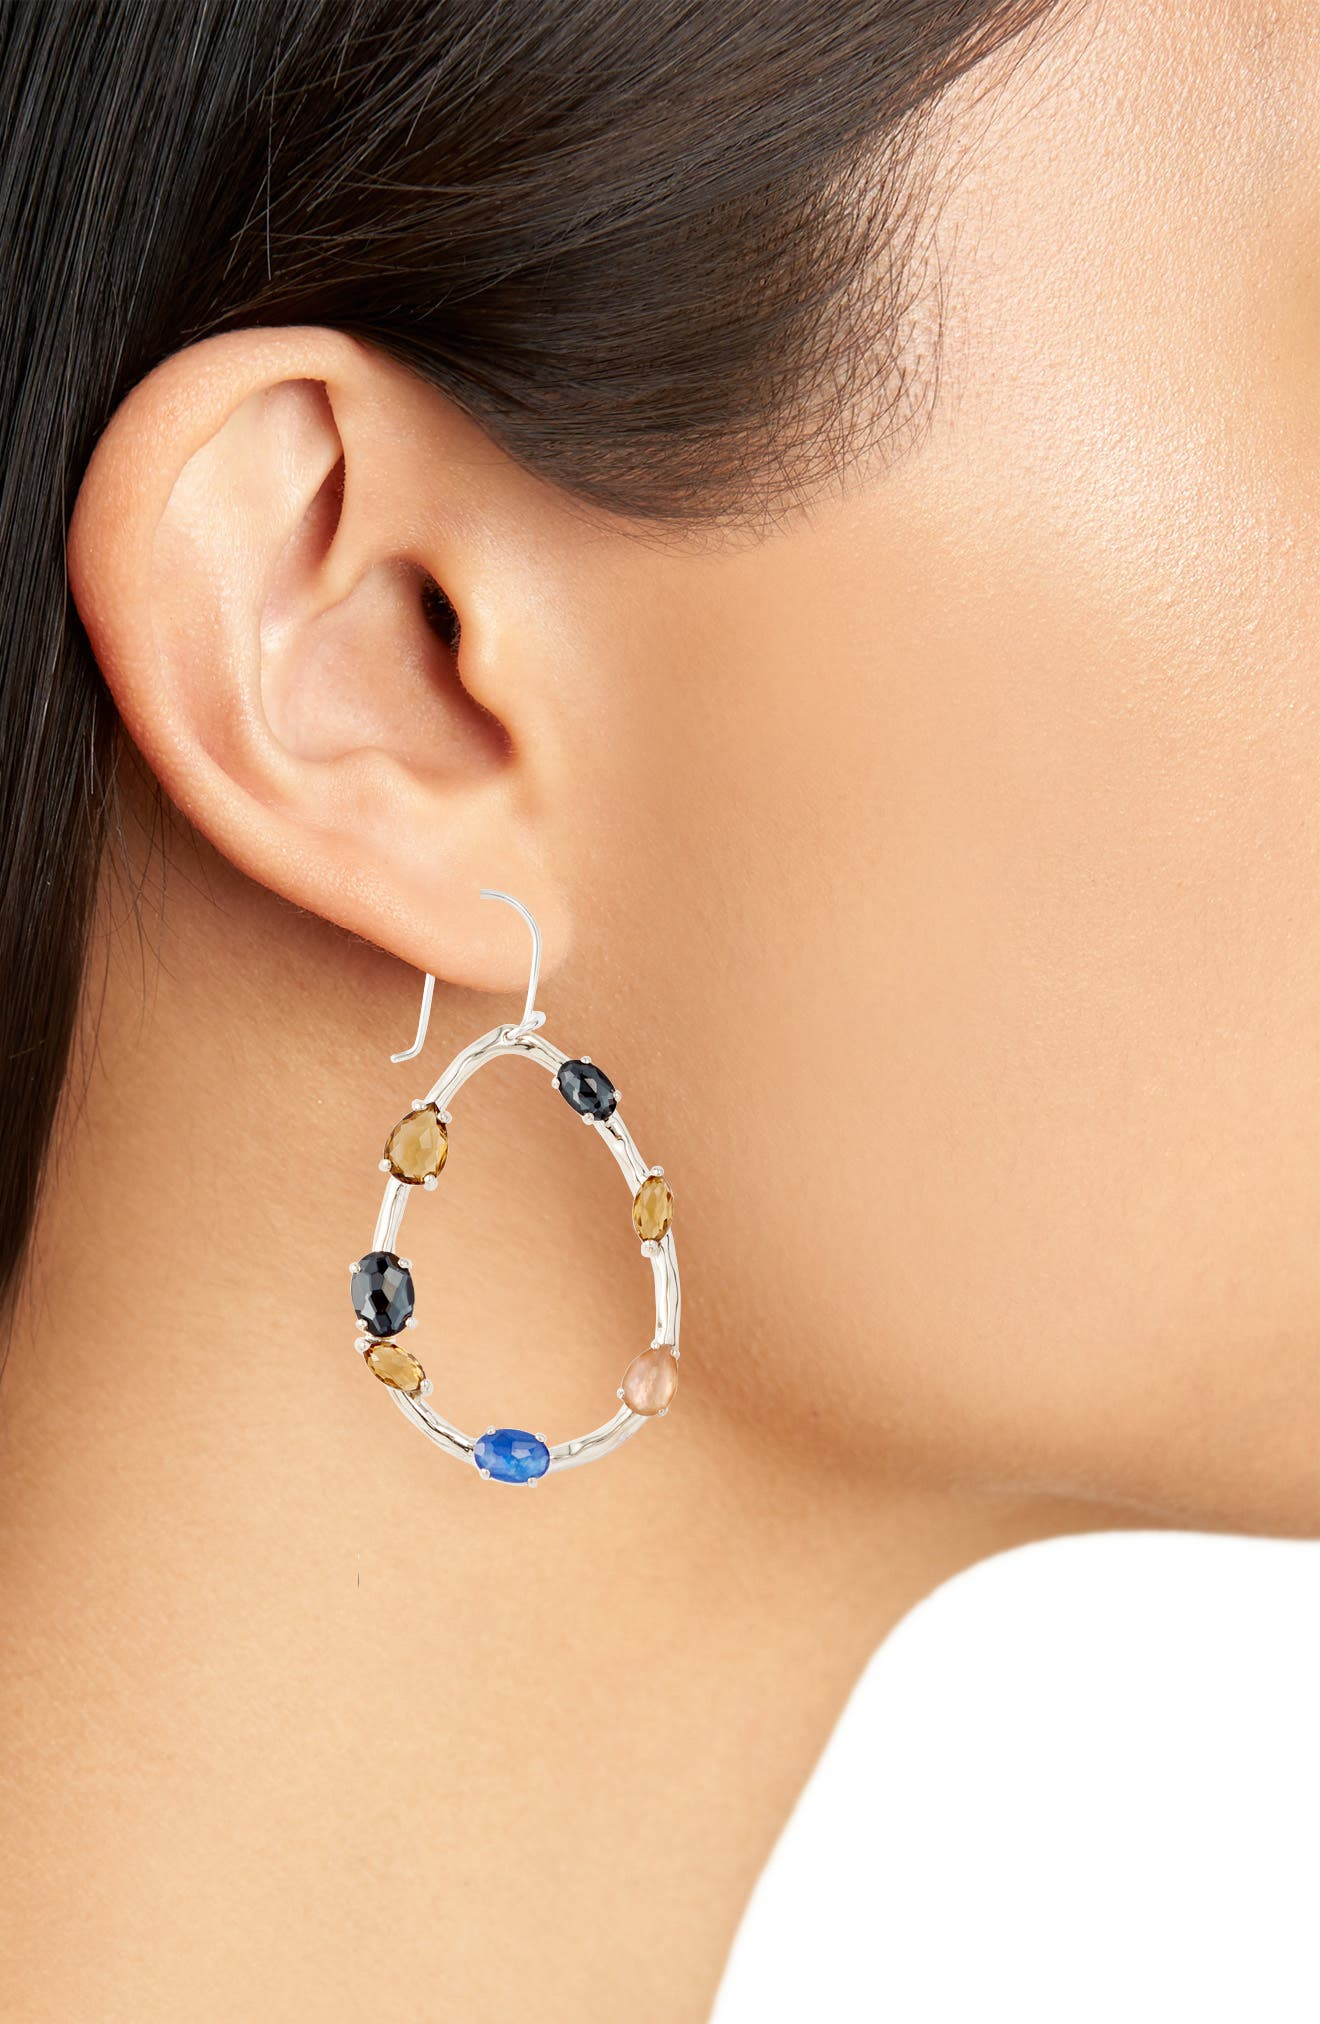 Rock Candy Drop Earrings,                             Alternate thumbnail 2, color,                             POSITANO